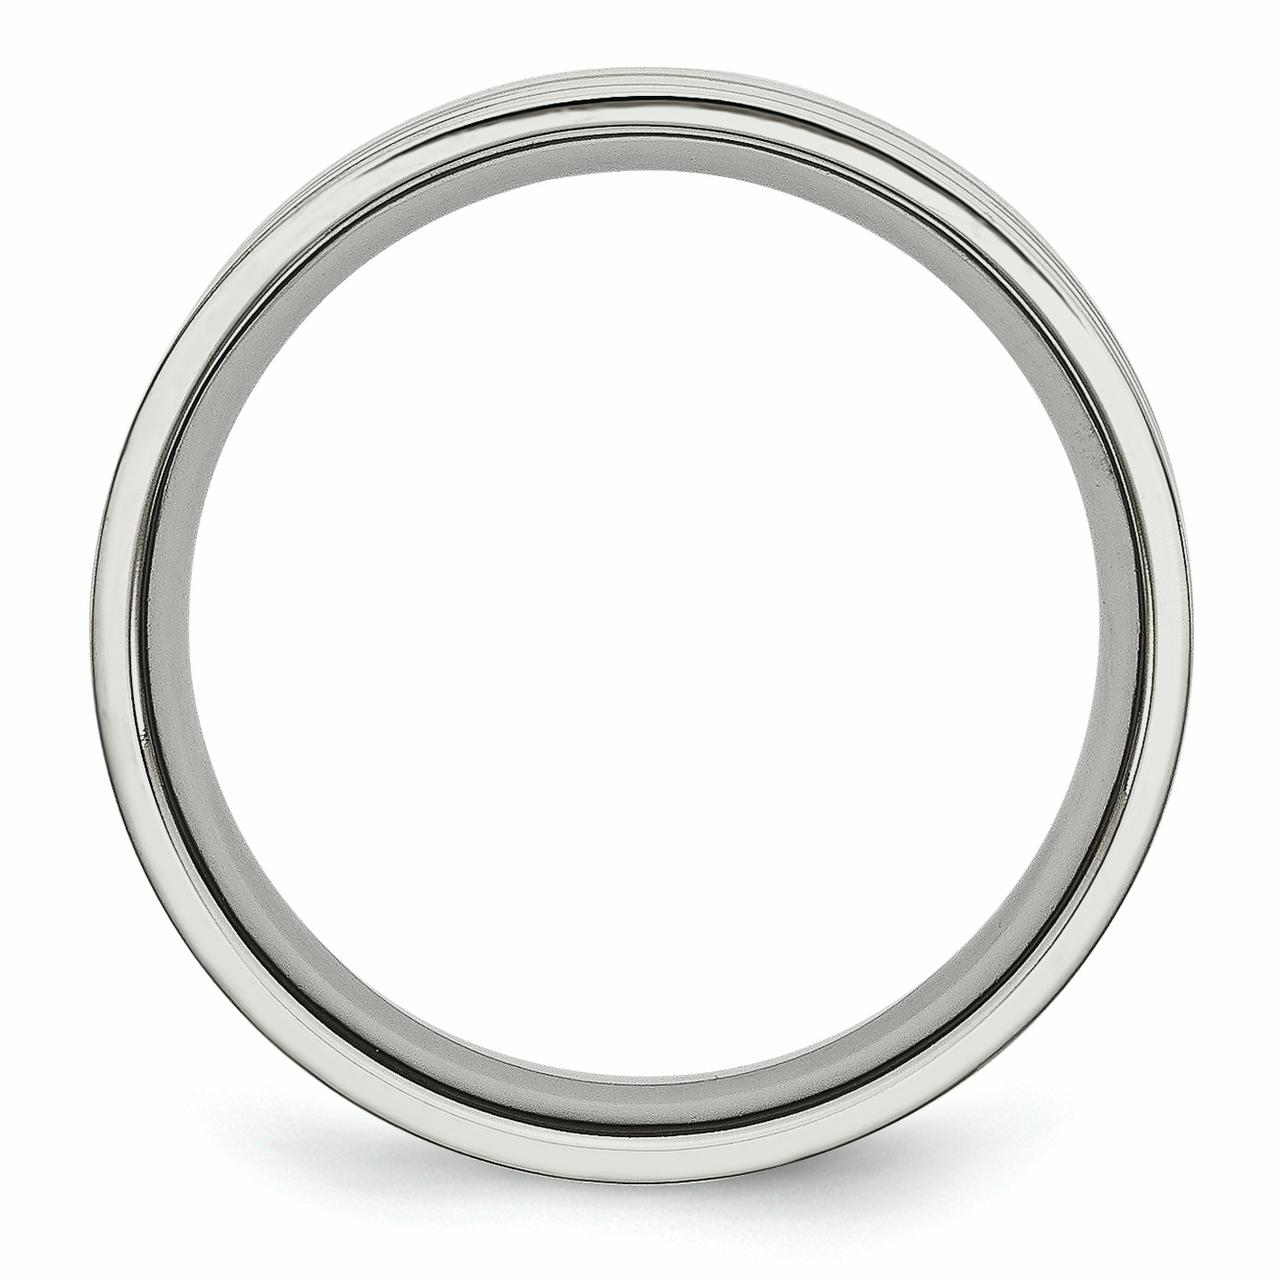 Stainless Steel Grooved 6mm Wedding Ring Band Size 9.00 Fashion Jewelry Gifts For Women For Her - image 3 de 6